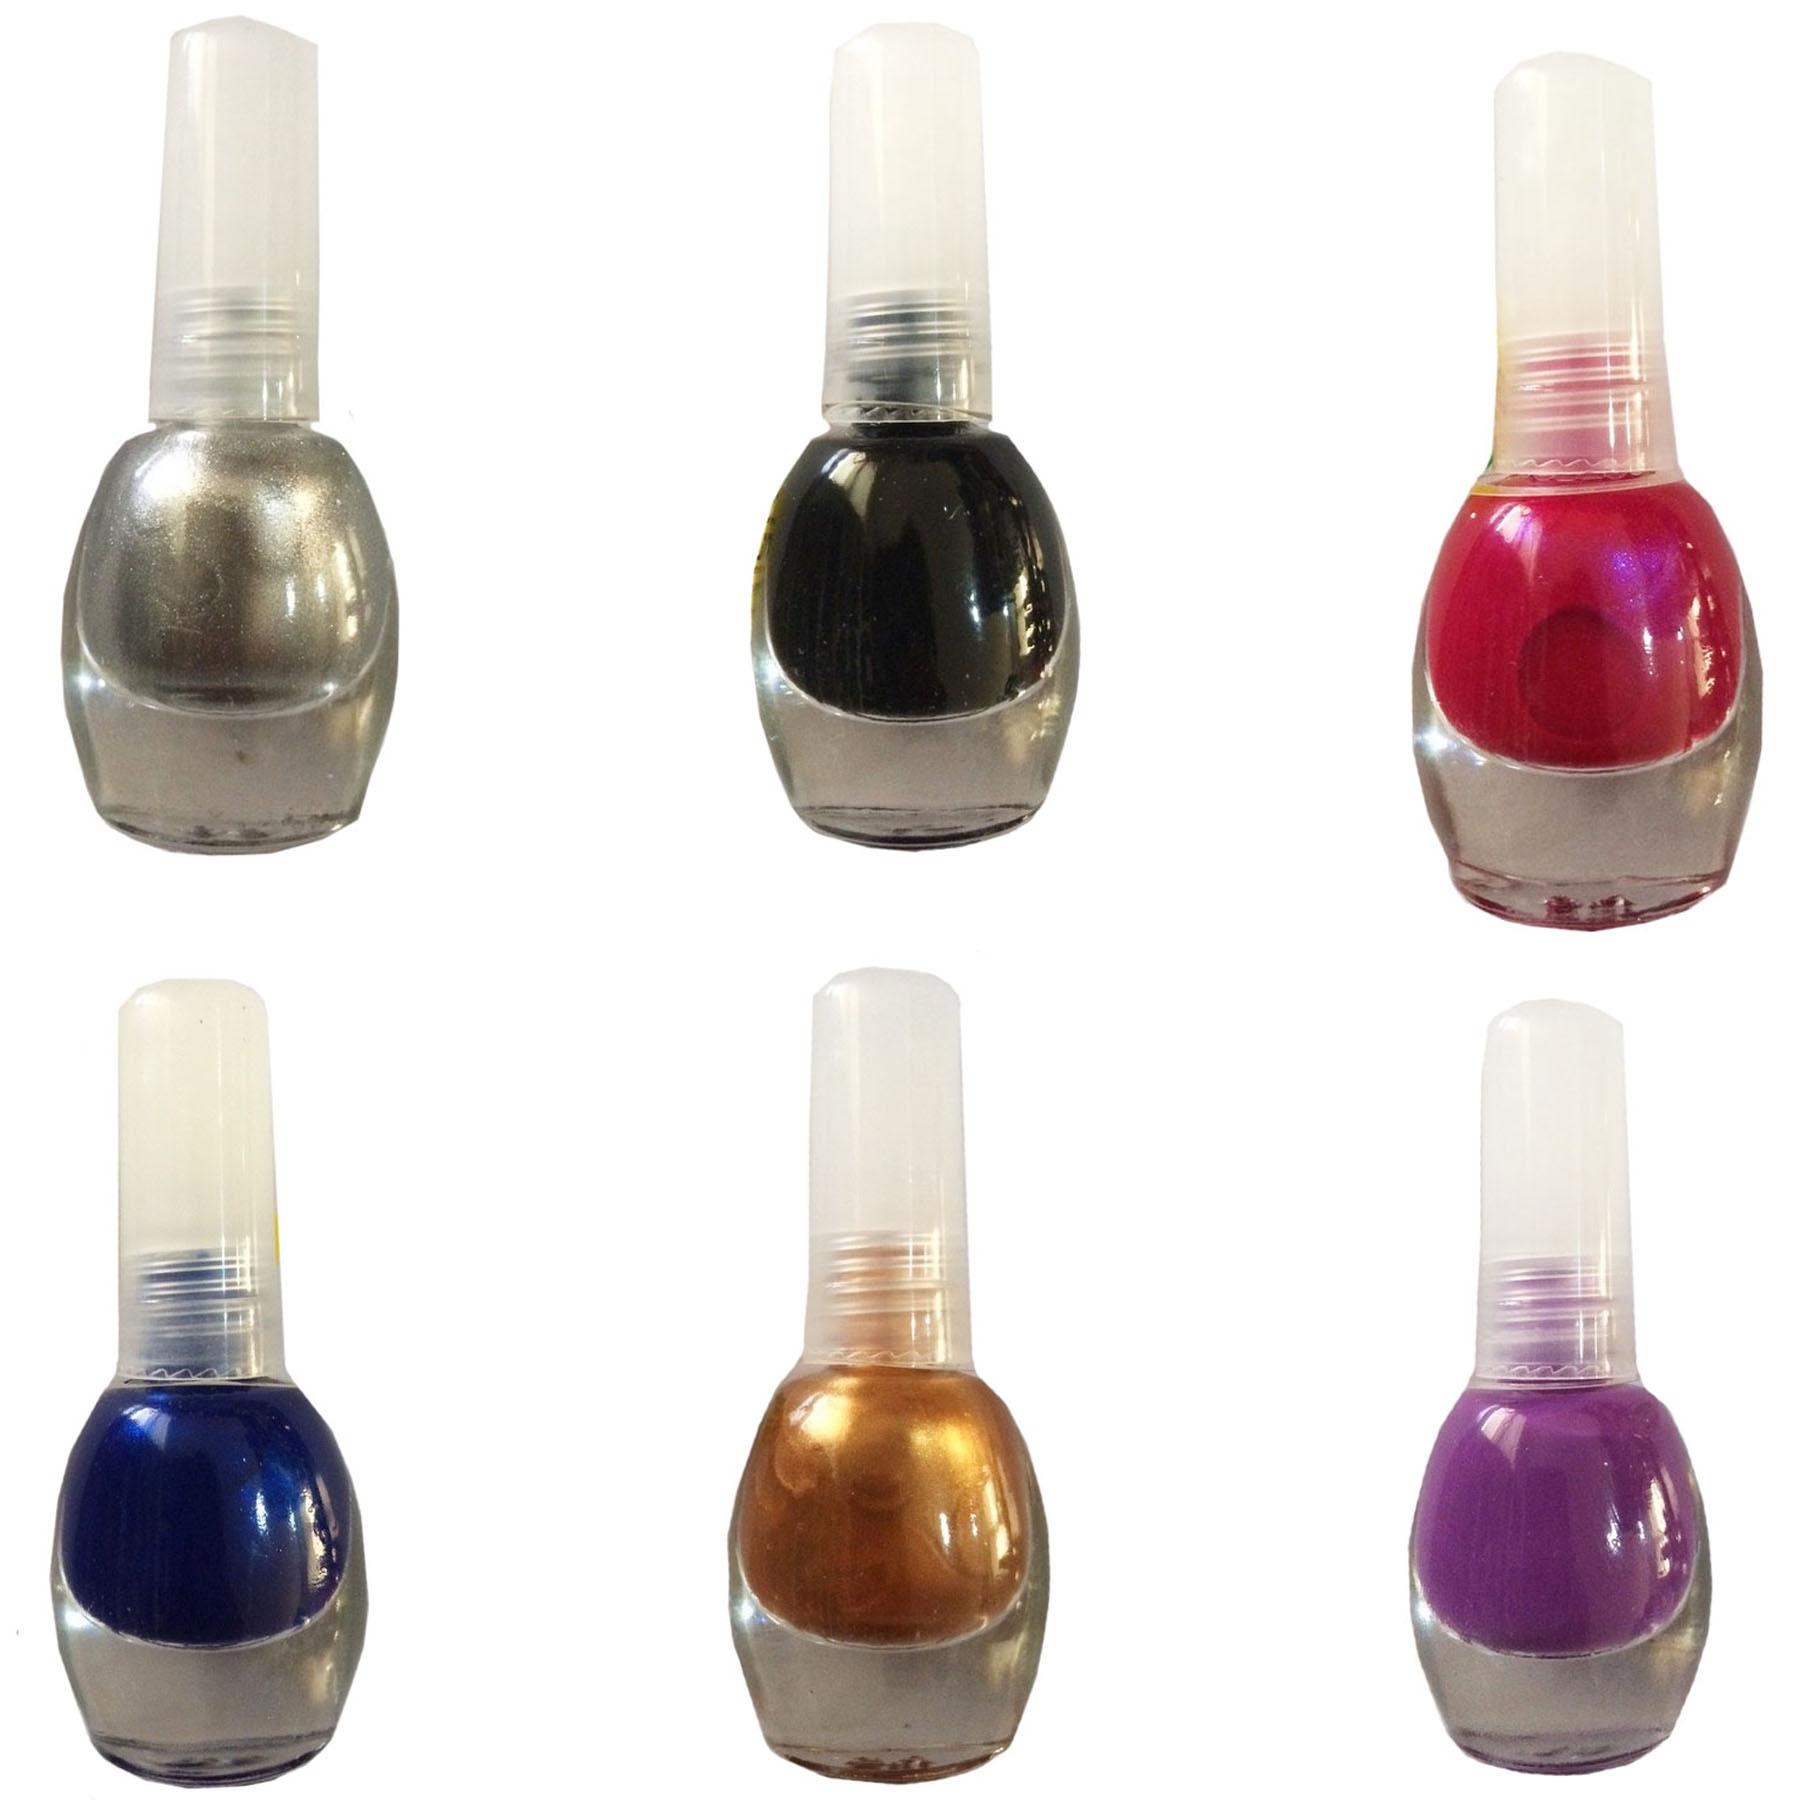 Phsupermall 12x Assorted Color Nail Polish 540g (colors May Vary) By Phsupermall.